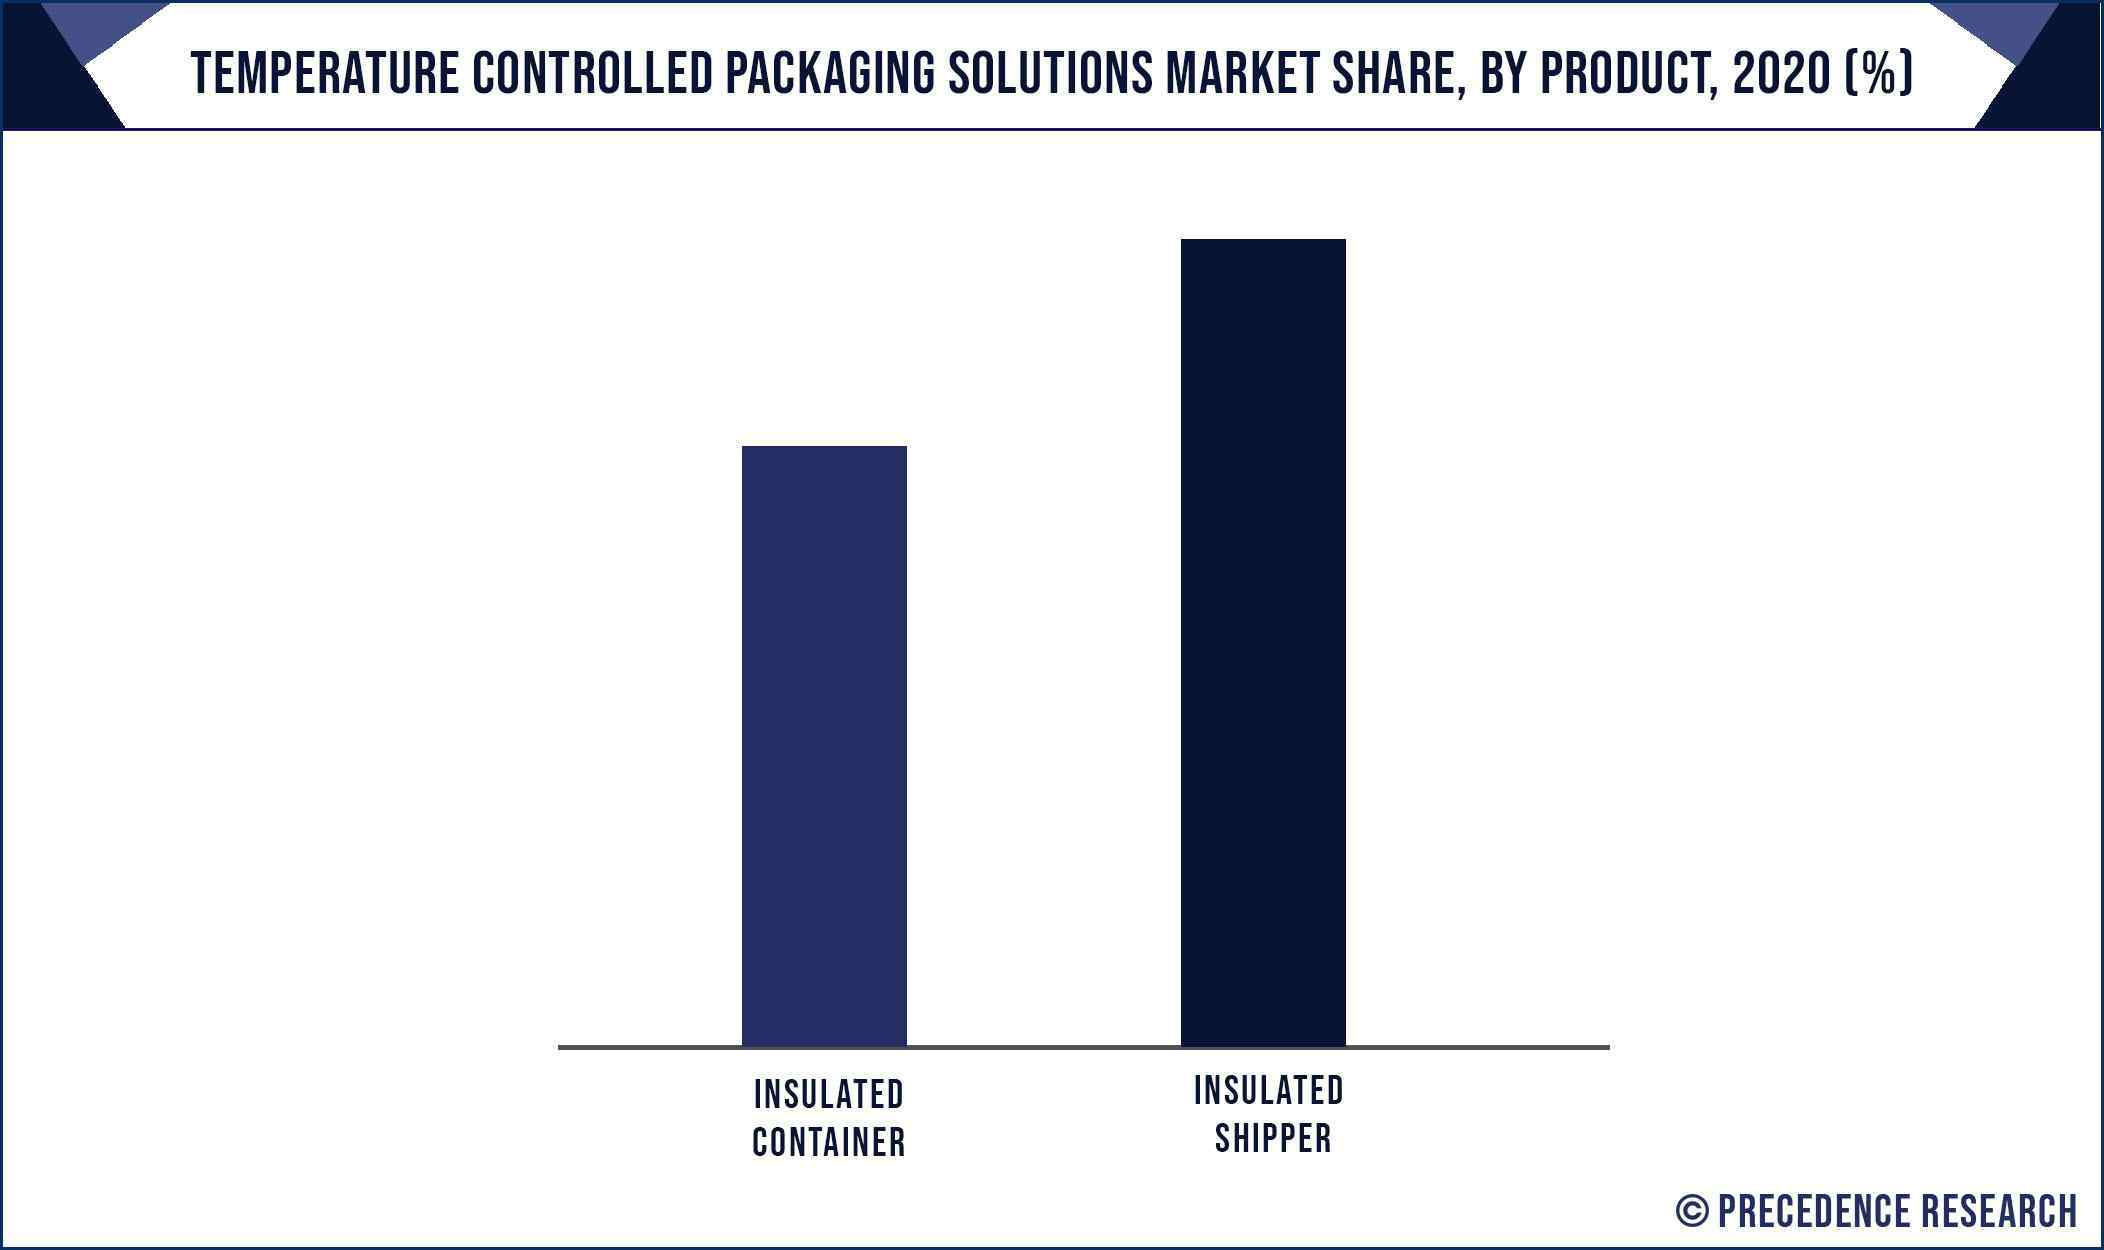 Temperature Controlled Packaging Solutions Market Share, By Product, 2020 (%)